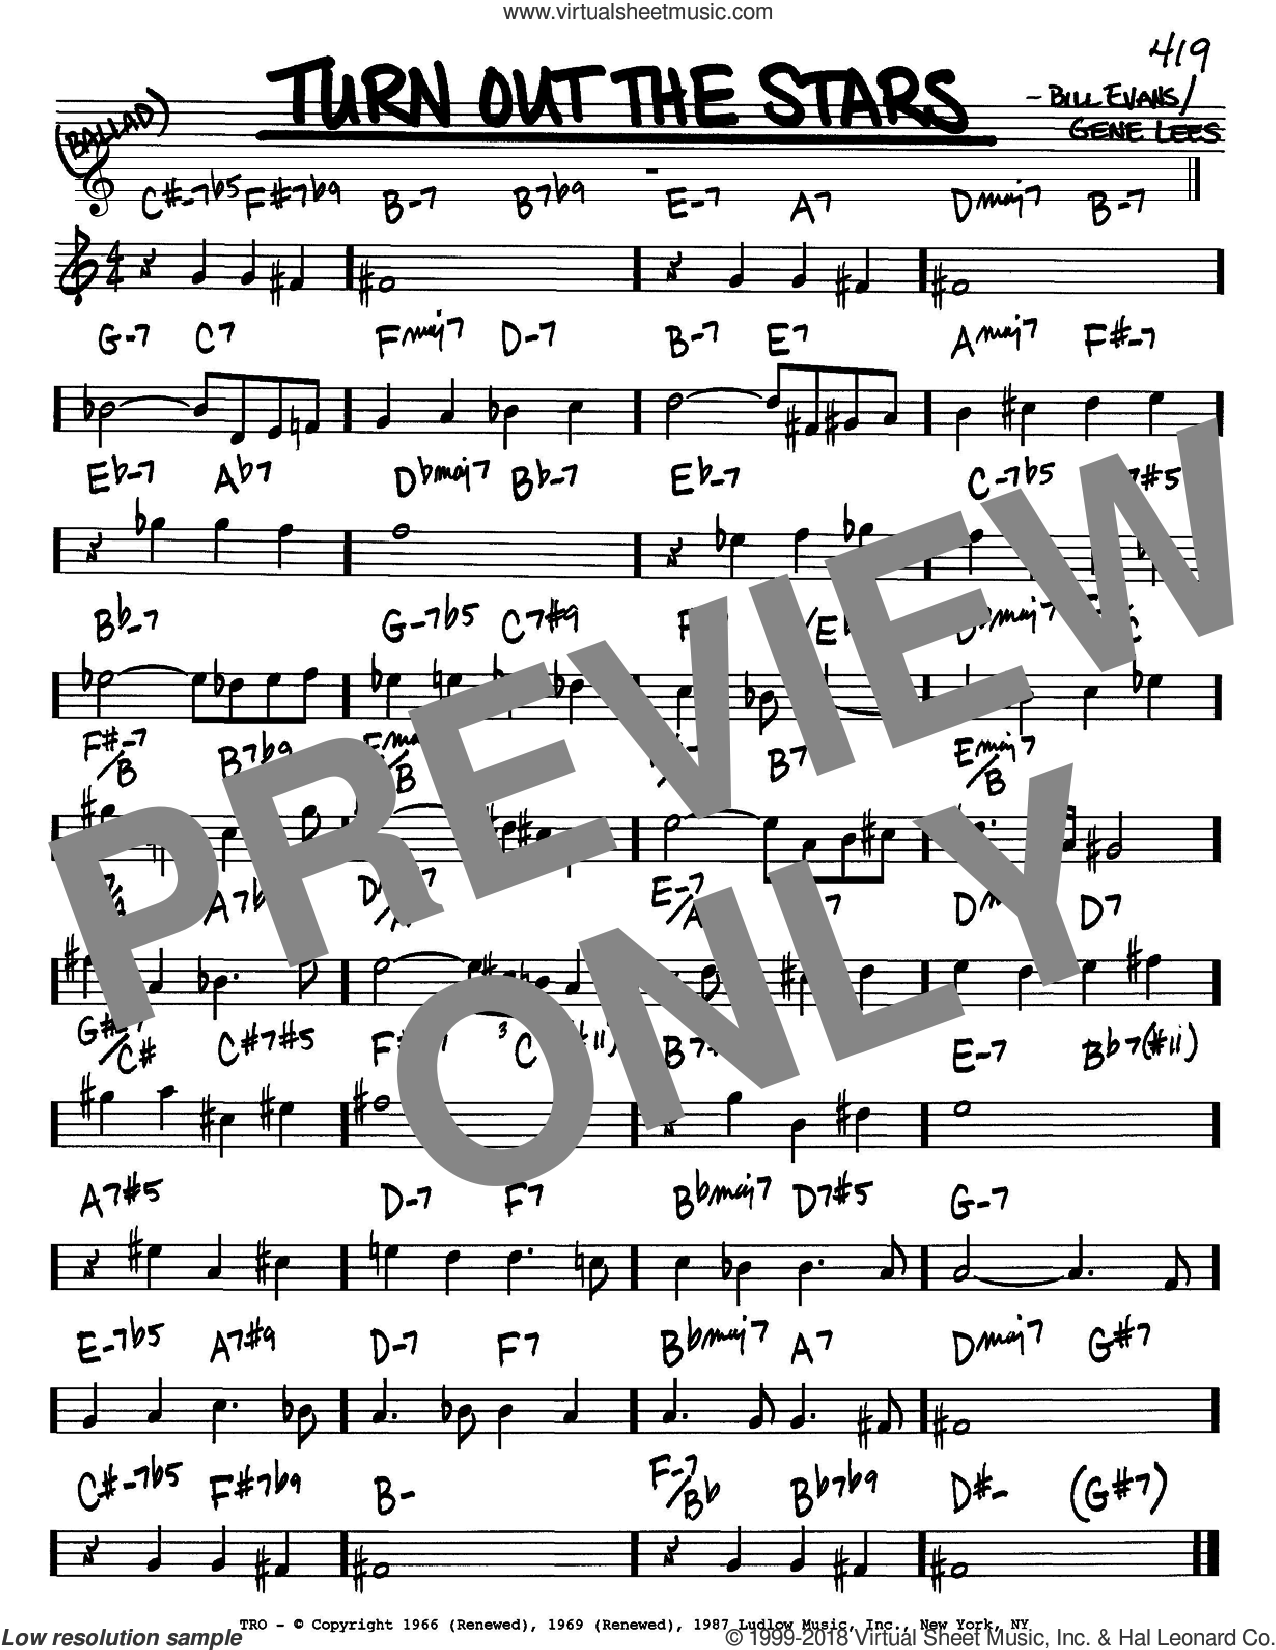 Turn Out The Stars sheet music for voice and other instruments (Bb) by Bill Evans. Score Image Preview.